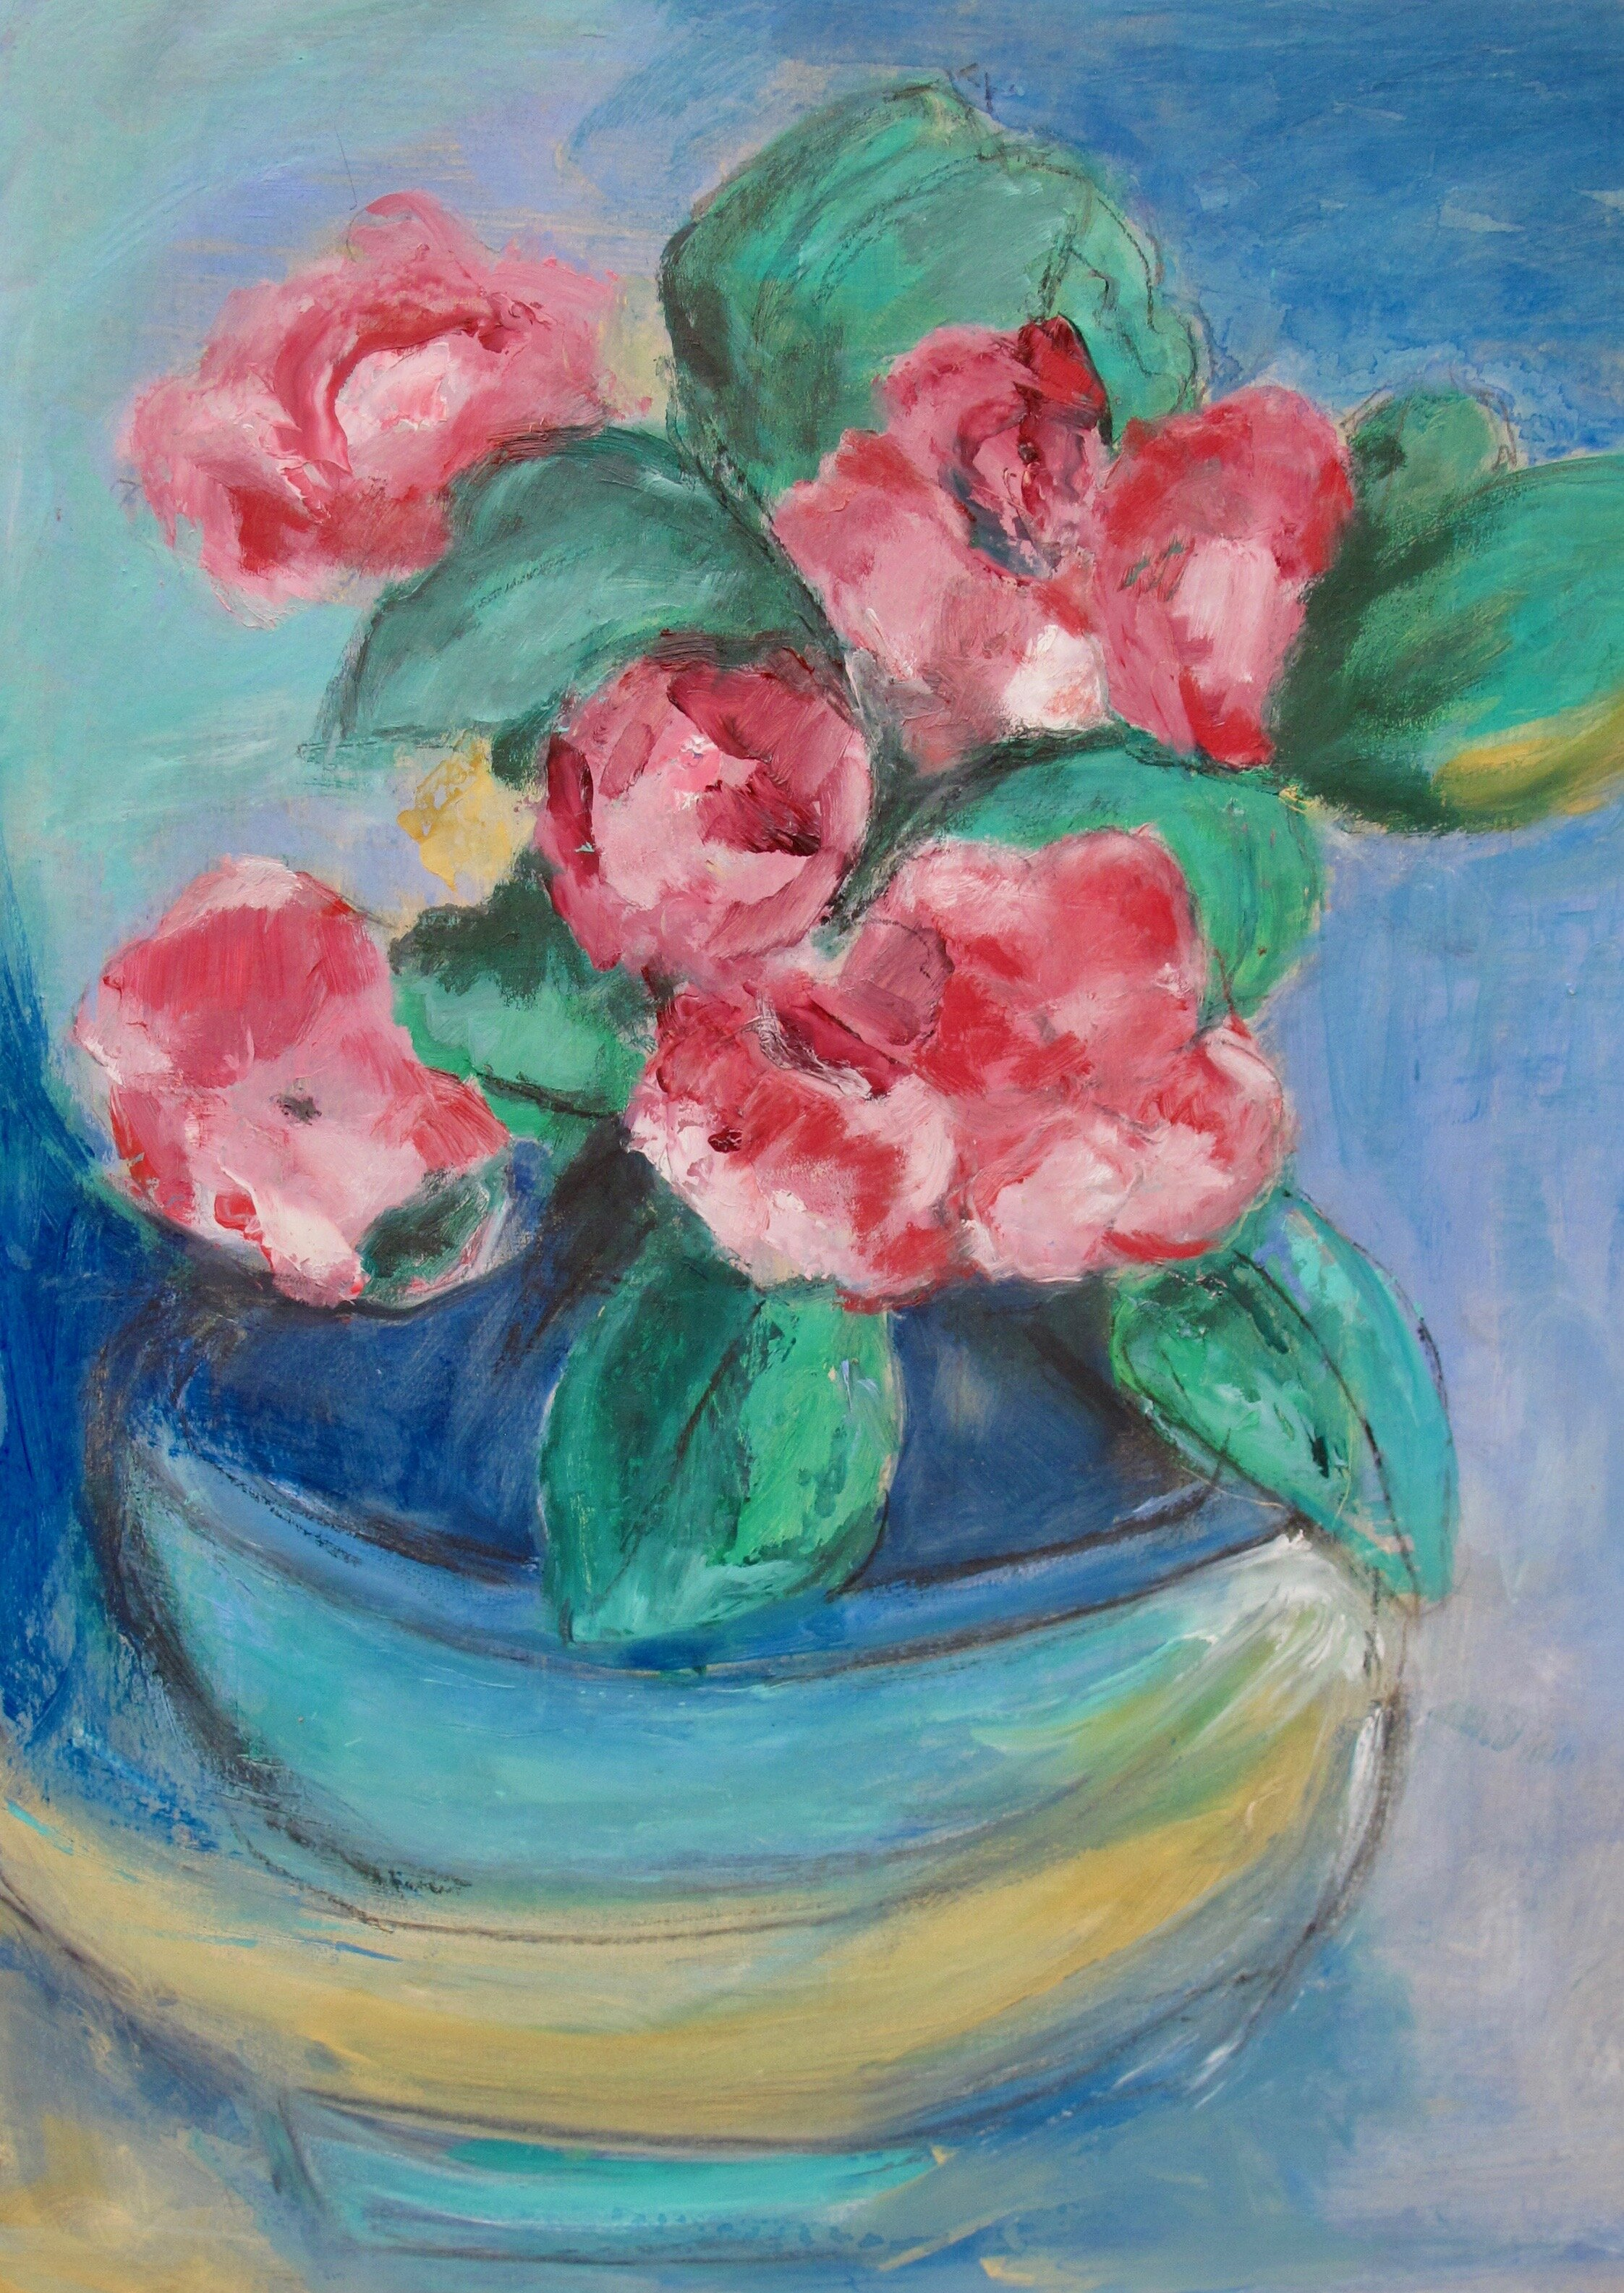 FLOWER BOWL  ACRYLIC ON BOARD  51 X 38 CM